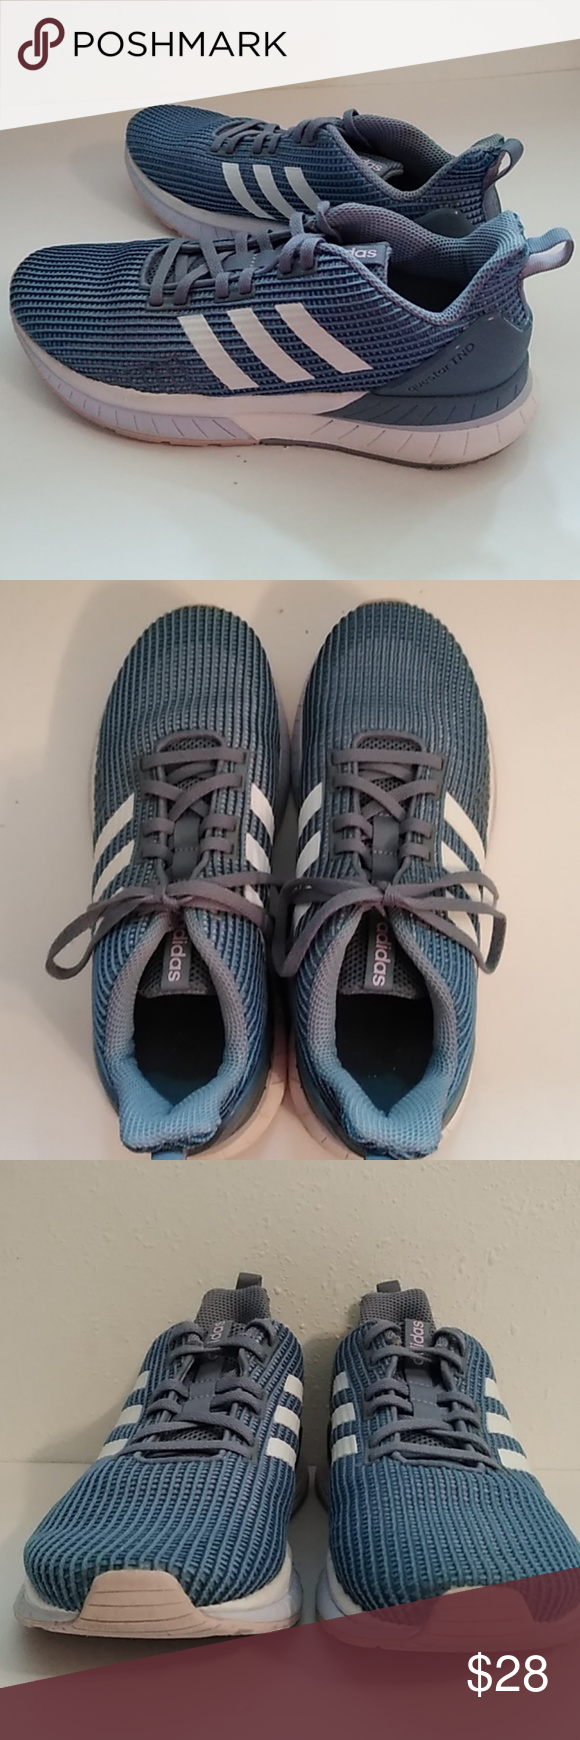 0a987965a74 Adidas Questar TND Cloudfoam Women s Running Shoes Adidas Questar TND  Cloudfoam Raw Grey White   Aero Blue Running Shoe. 7M ( more like 7 1 2)  Excellent ...